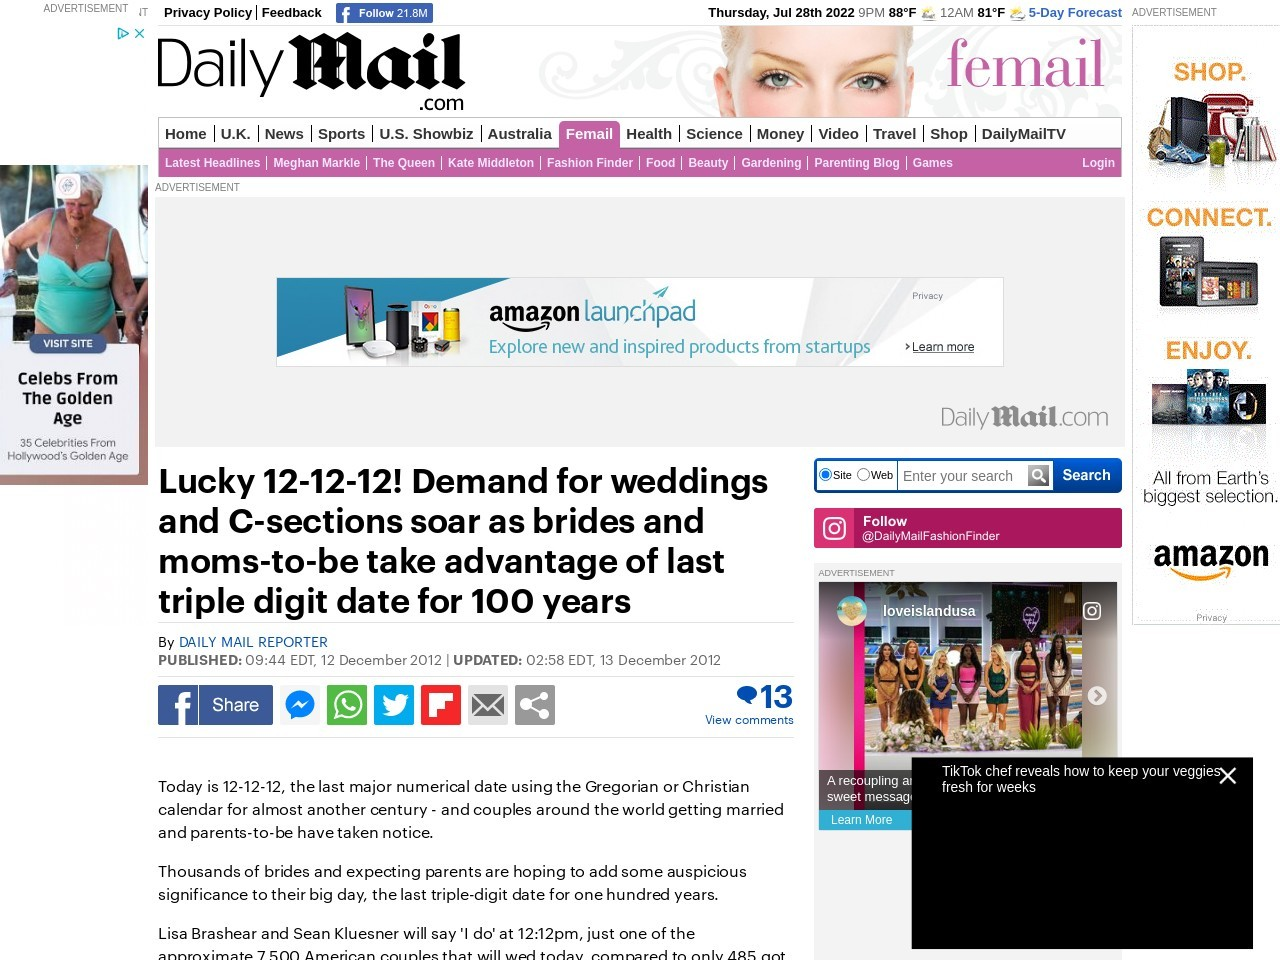 12-12-12! Wedding fever peaks today with 7500 brides set to say 'I do' on last …